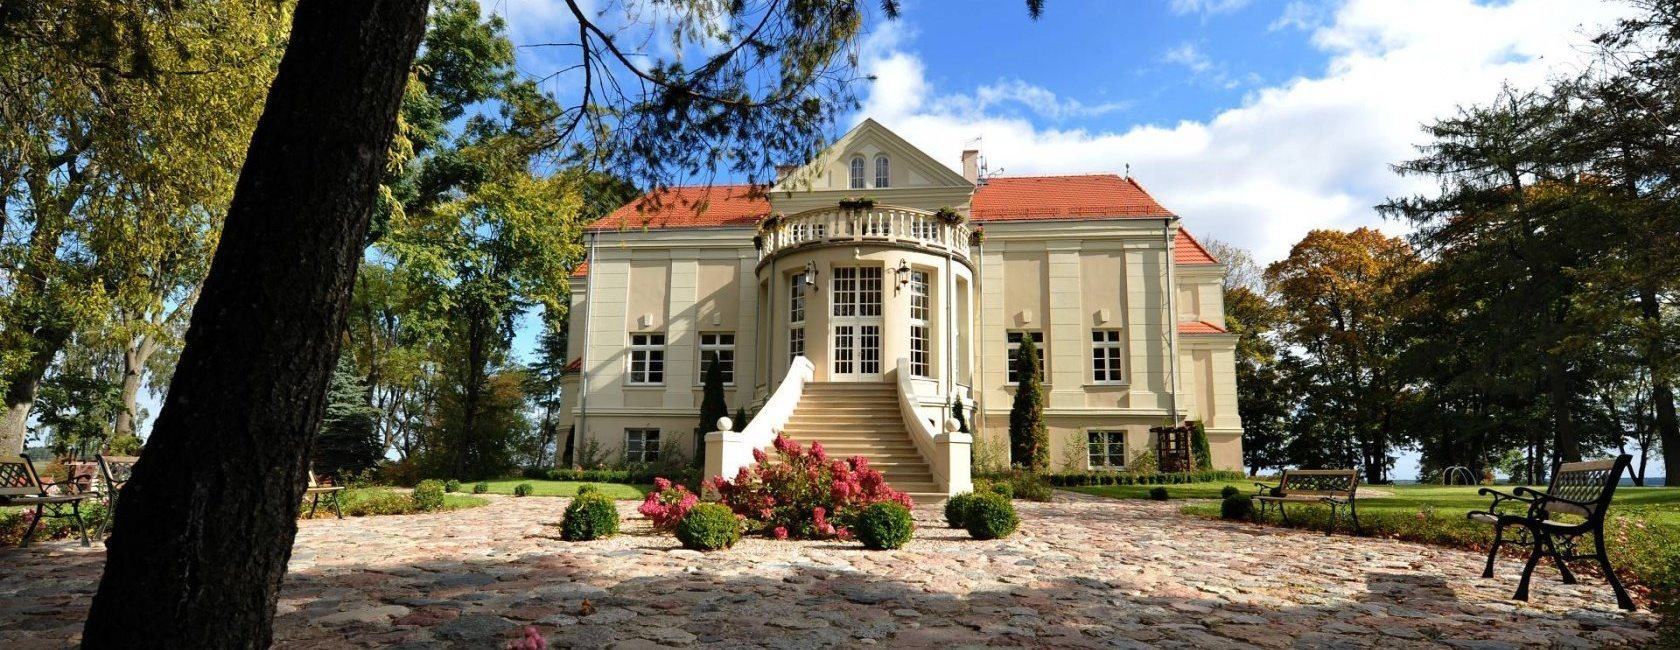 Pacoltowo Palace in Gierzwald, Poland